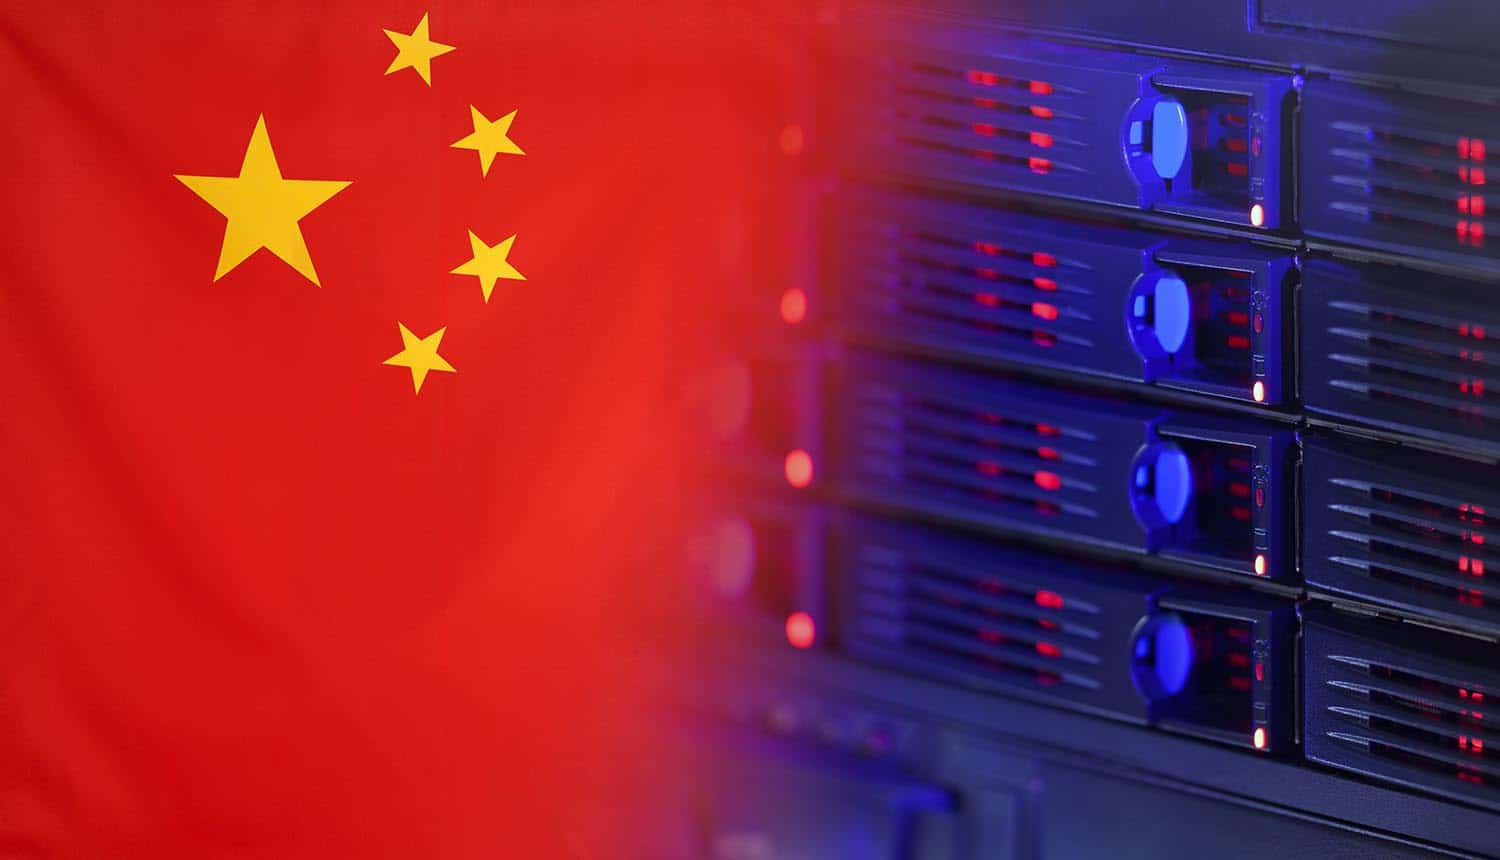 Server hardware merging with the Flag of China showing Zhenhua data leak of personal information